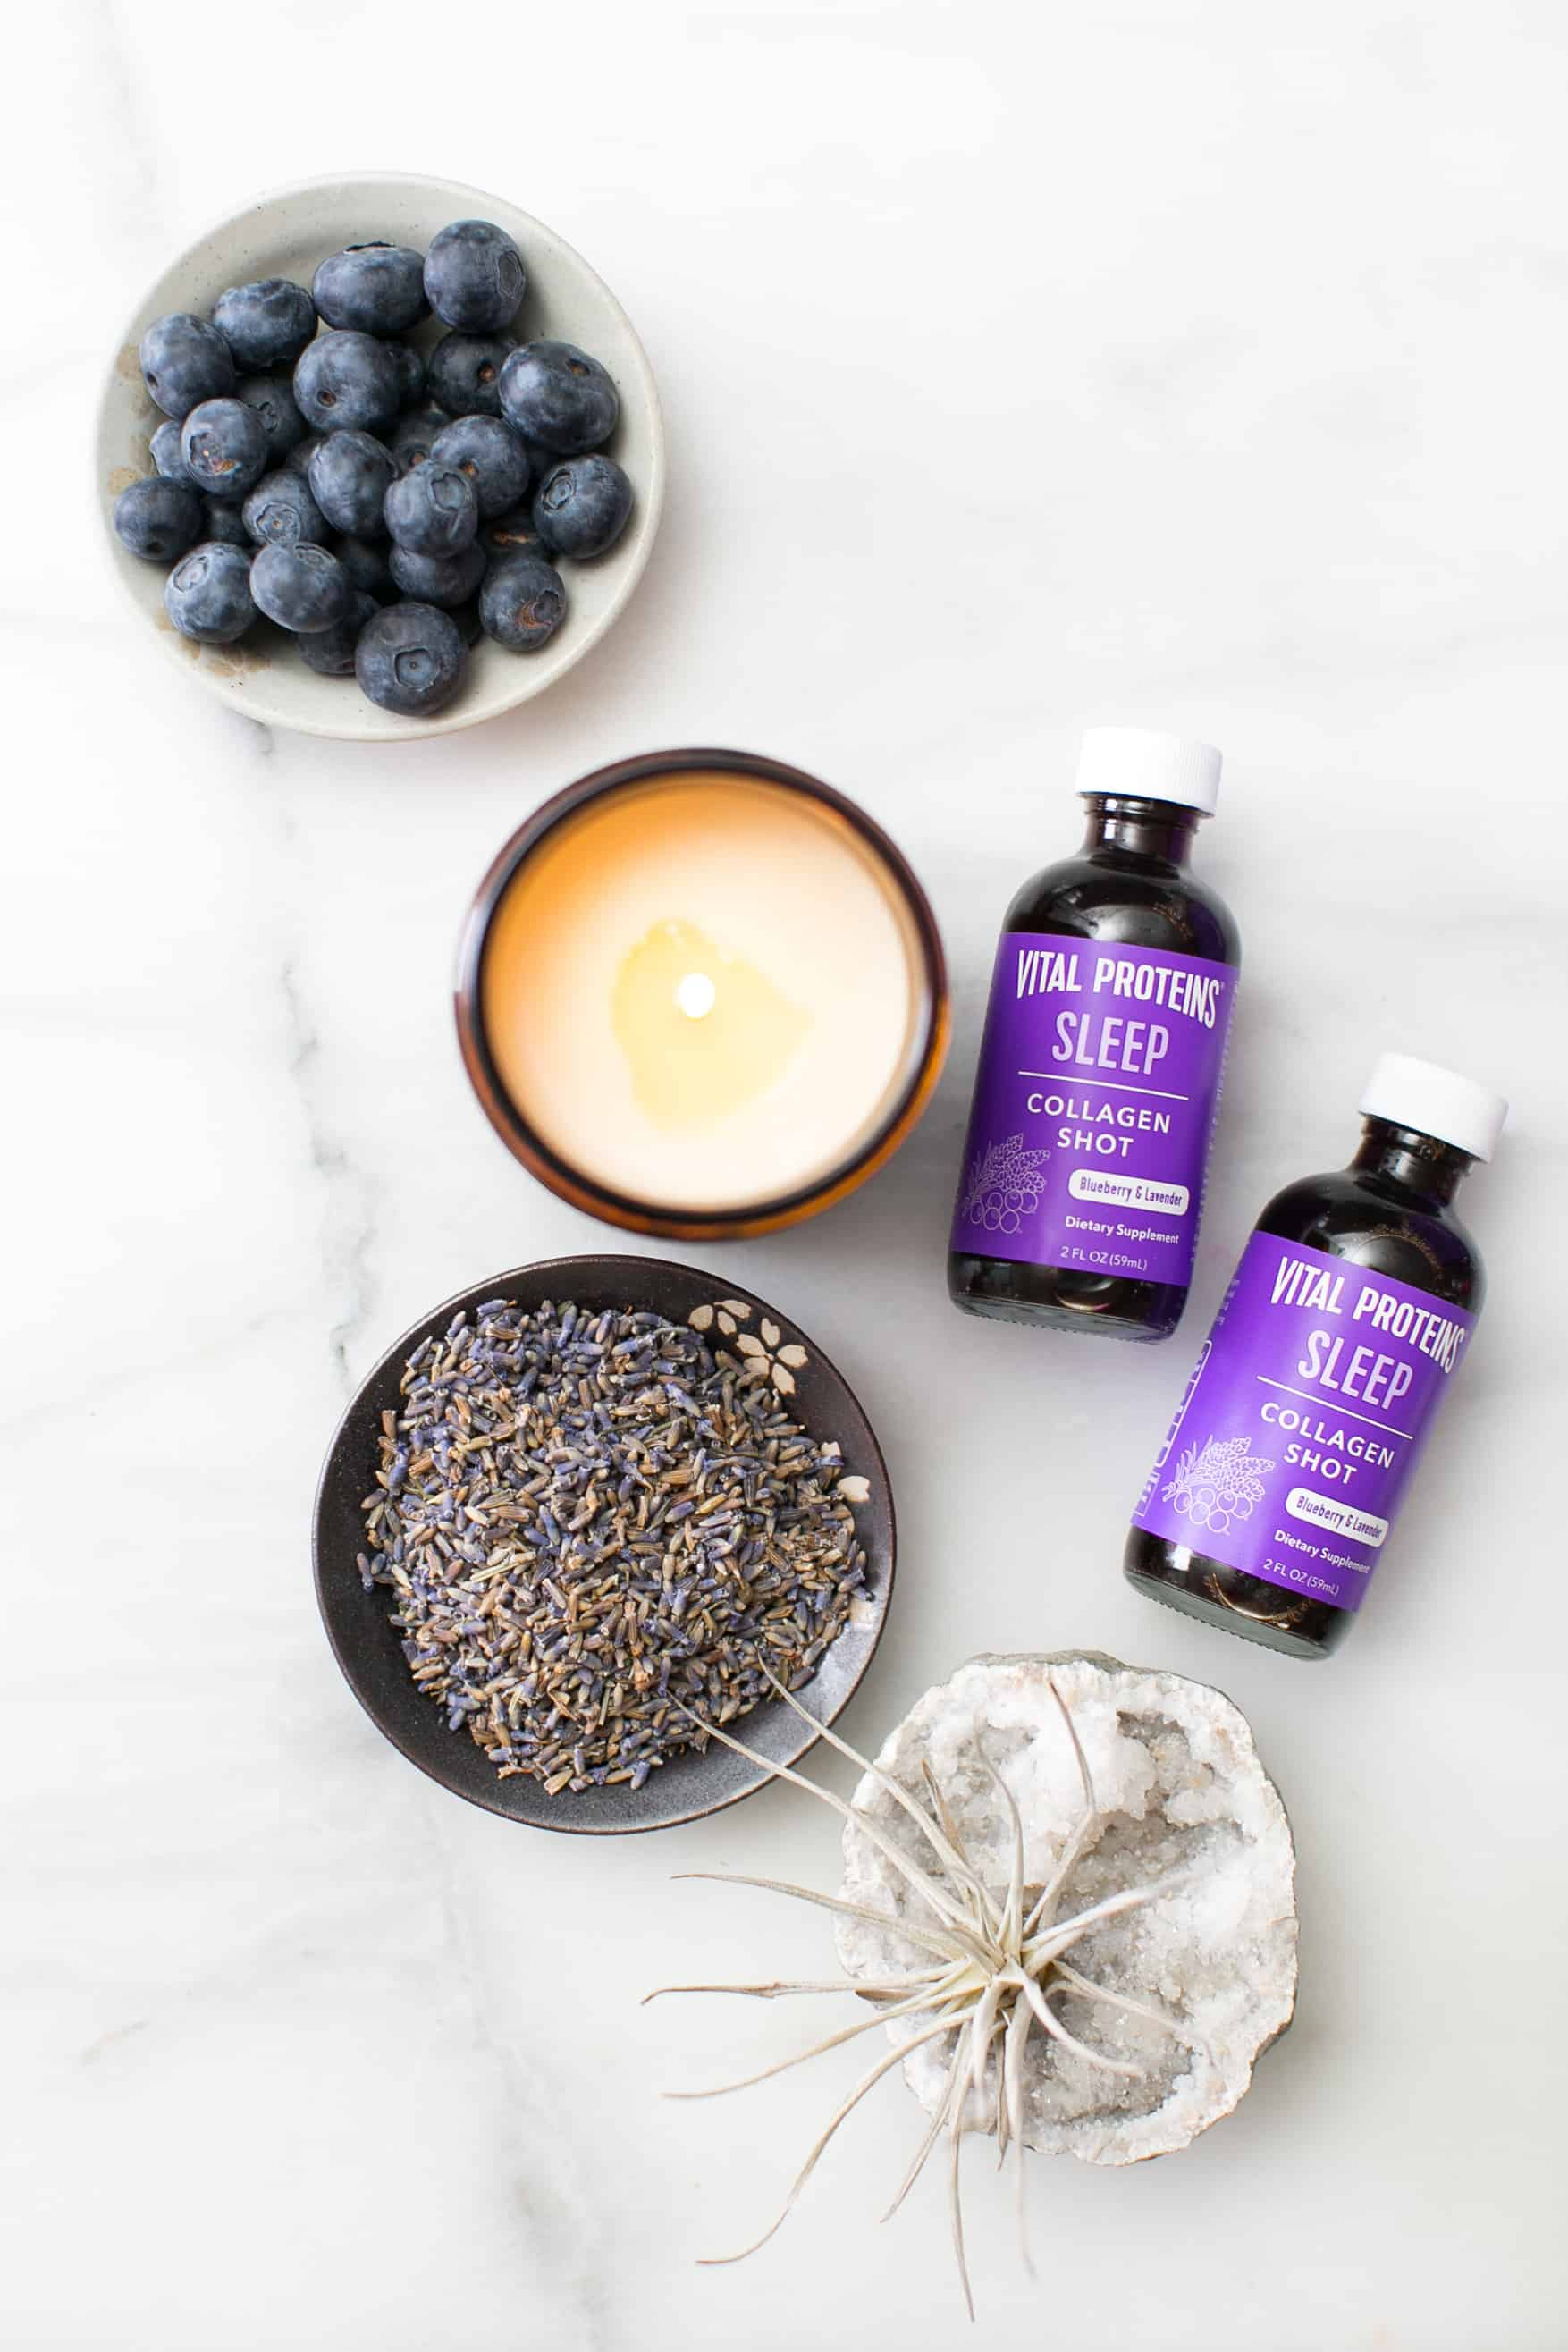 5 Reasons To Add Collagen Any Time of Day